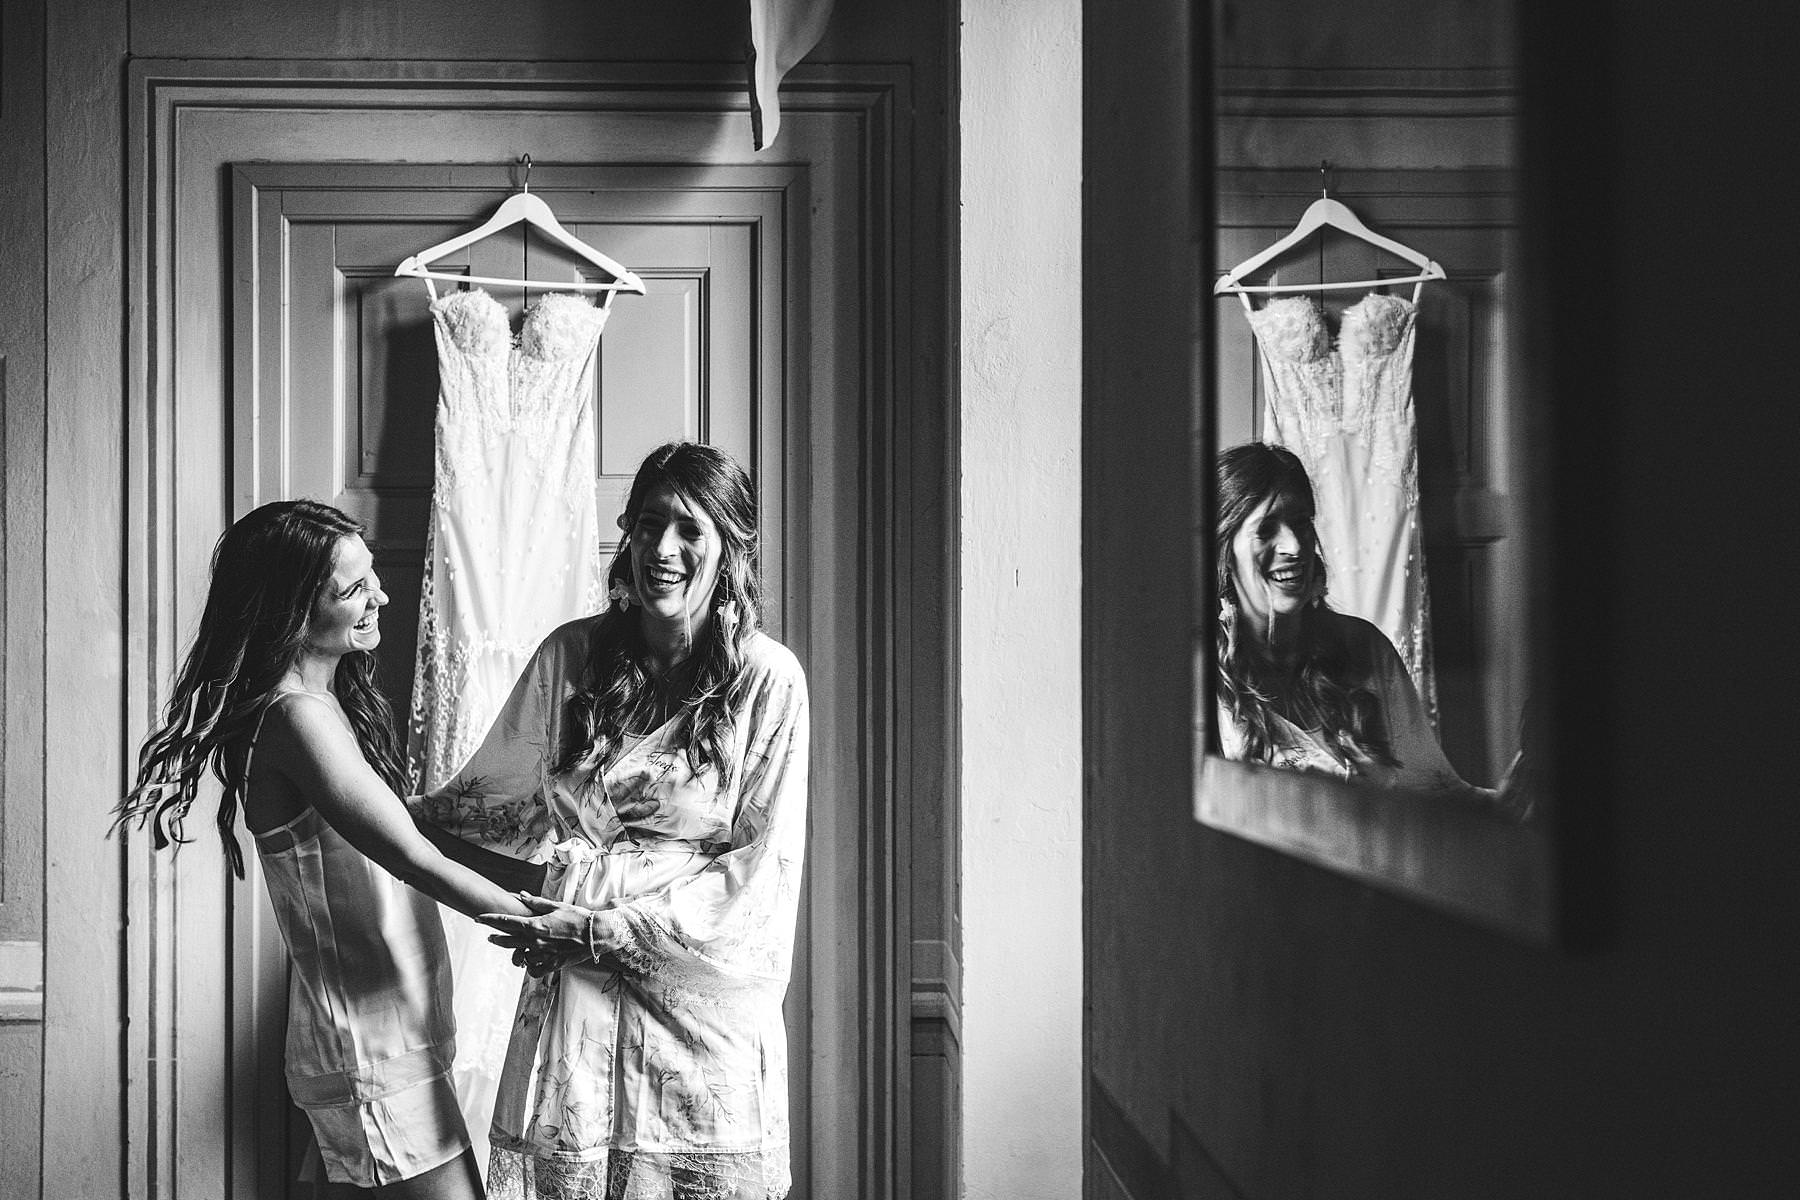 Lovely moment with bride and bridesmaid during getting ready at Villa Il Poggiale. Destination wedding in Tuscany countryside of Chianti